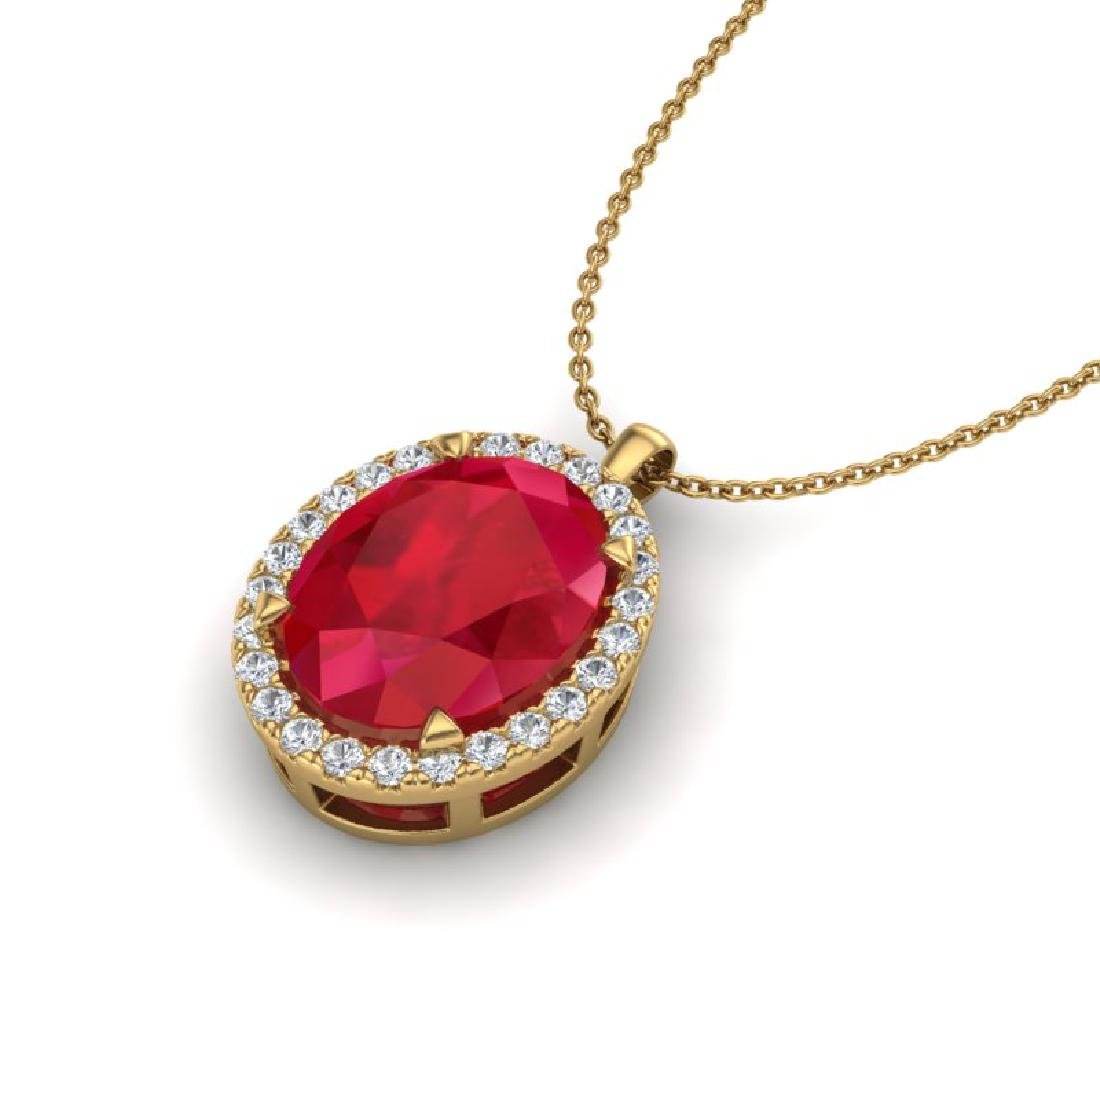 2.75 CTW Ruby & Micro VS/SI Diamond Halo Necklace 18K - 2